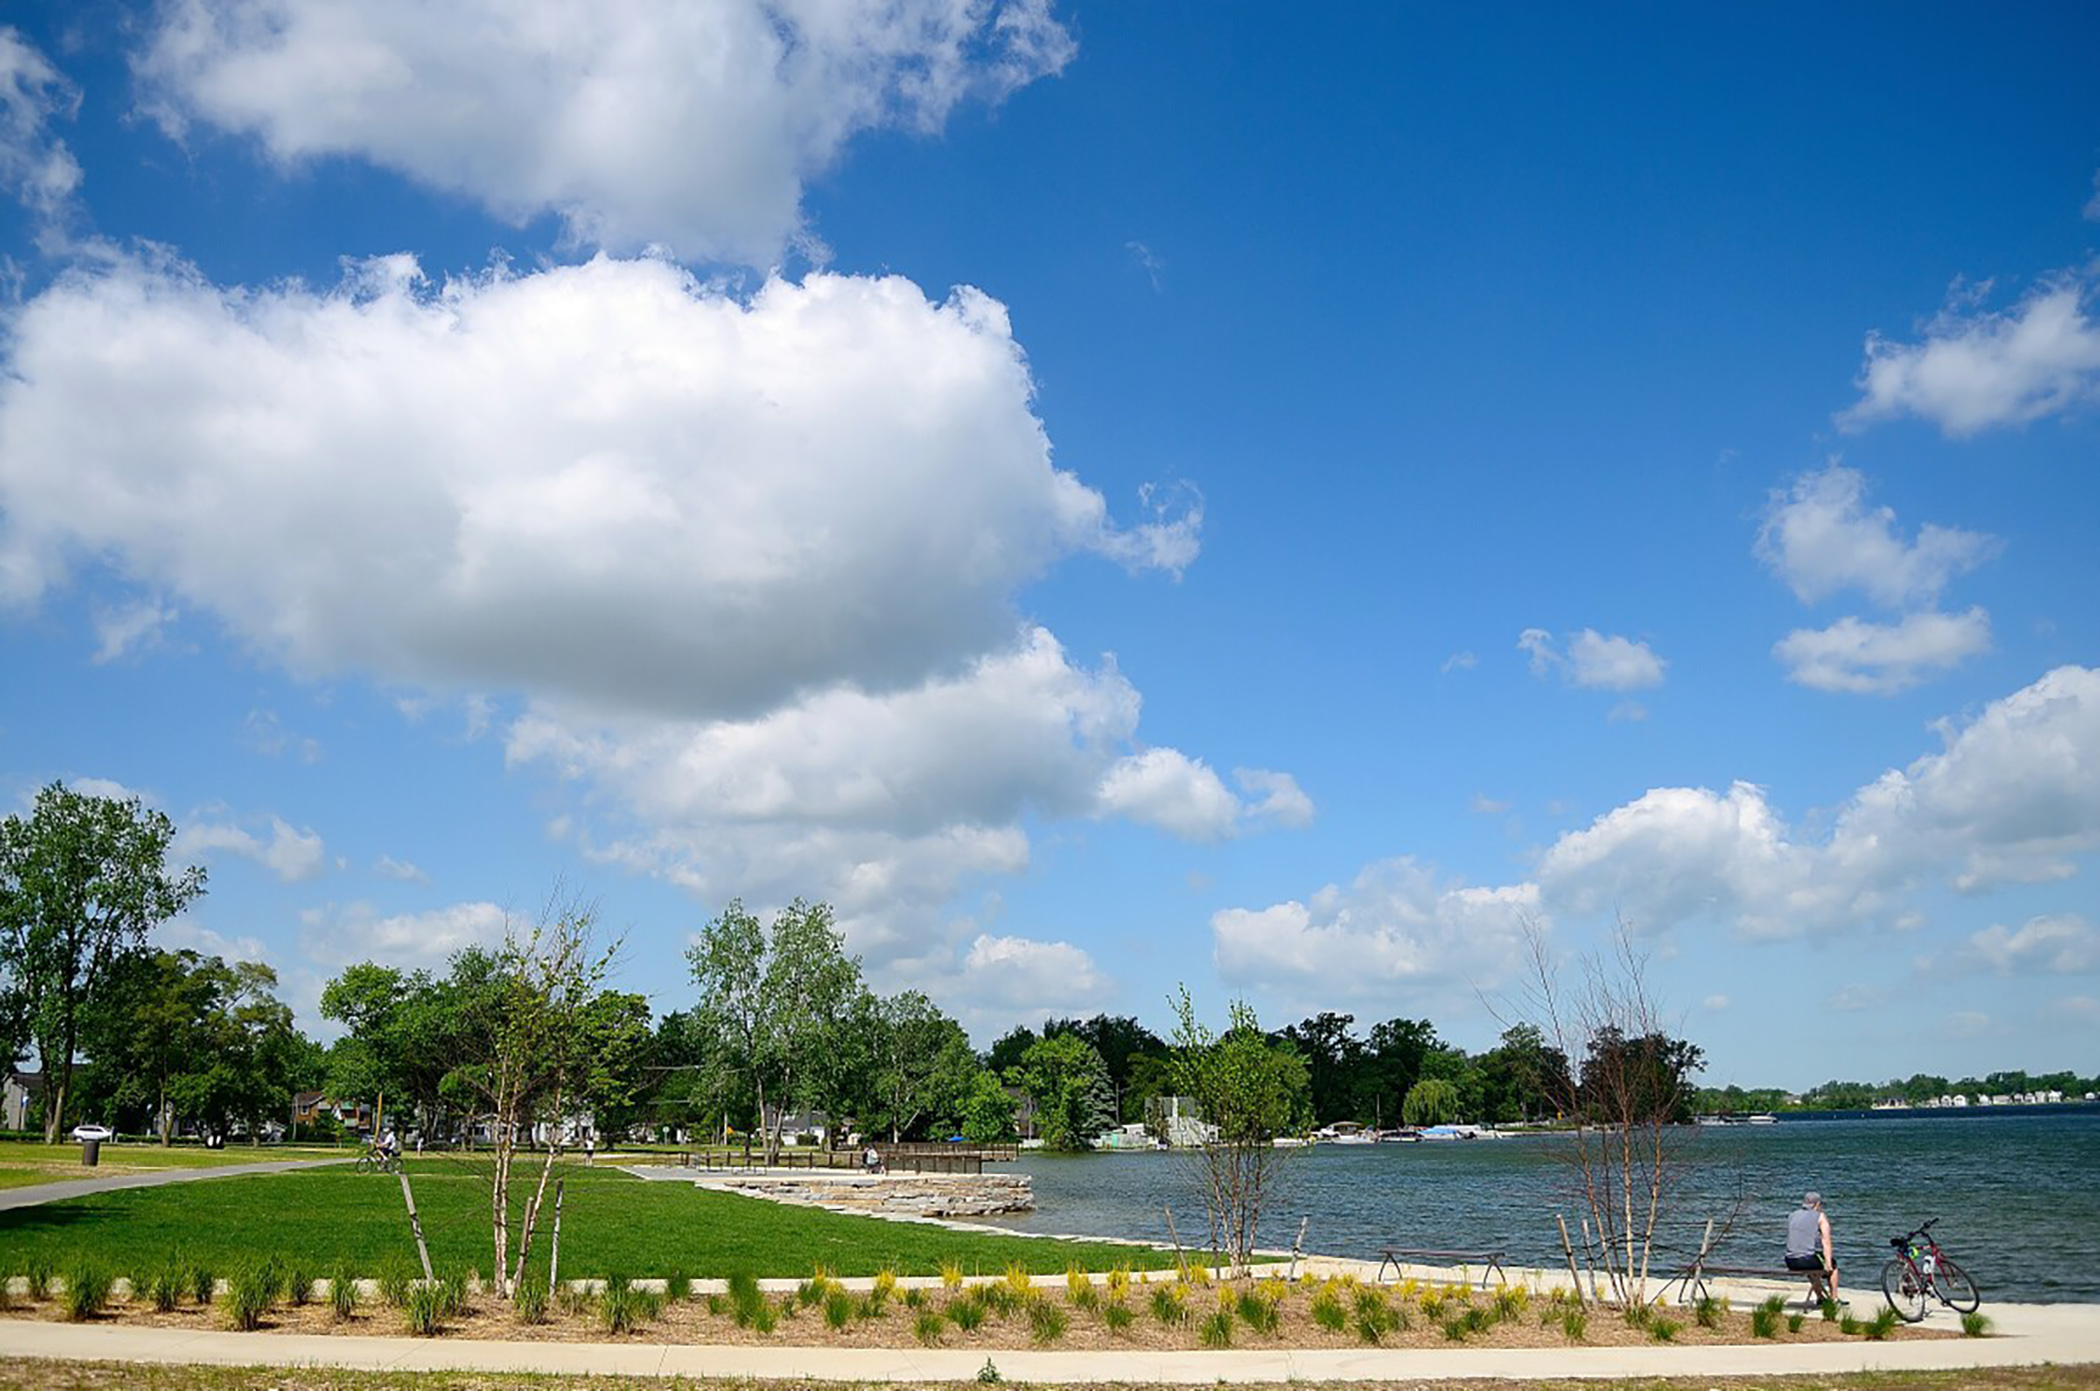 Novi, Michigan. Among the metro-Detroit suburbs and towns, Novi stands out for its affordable housing, high median income, and remarkably international population.